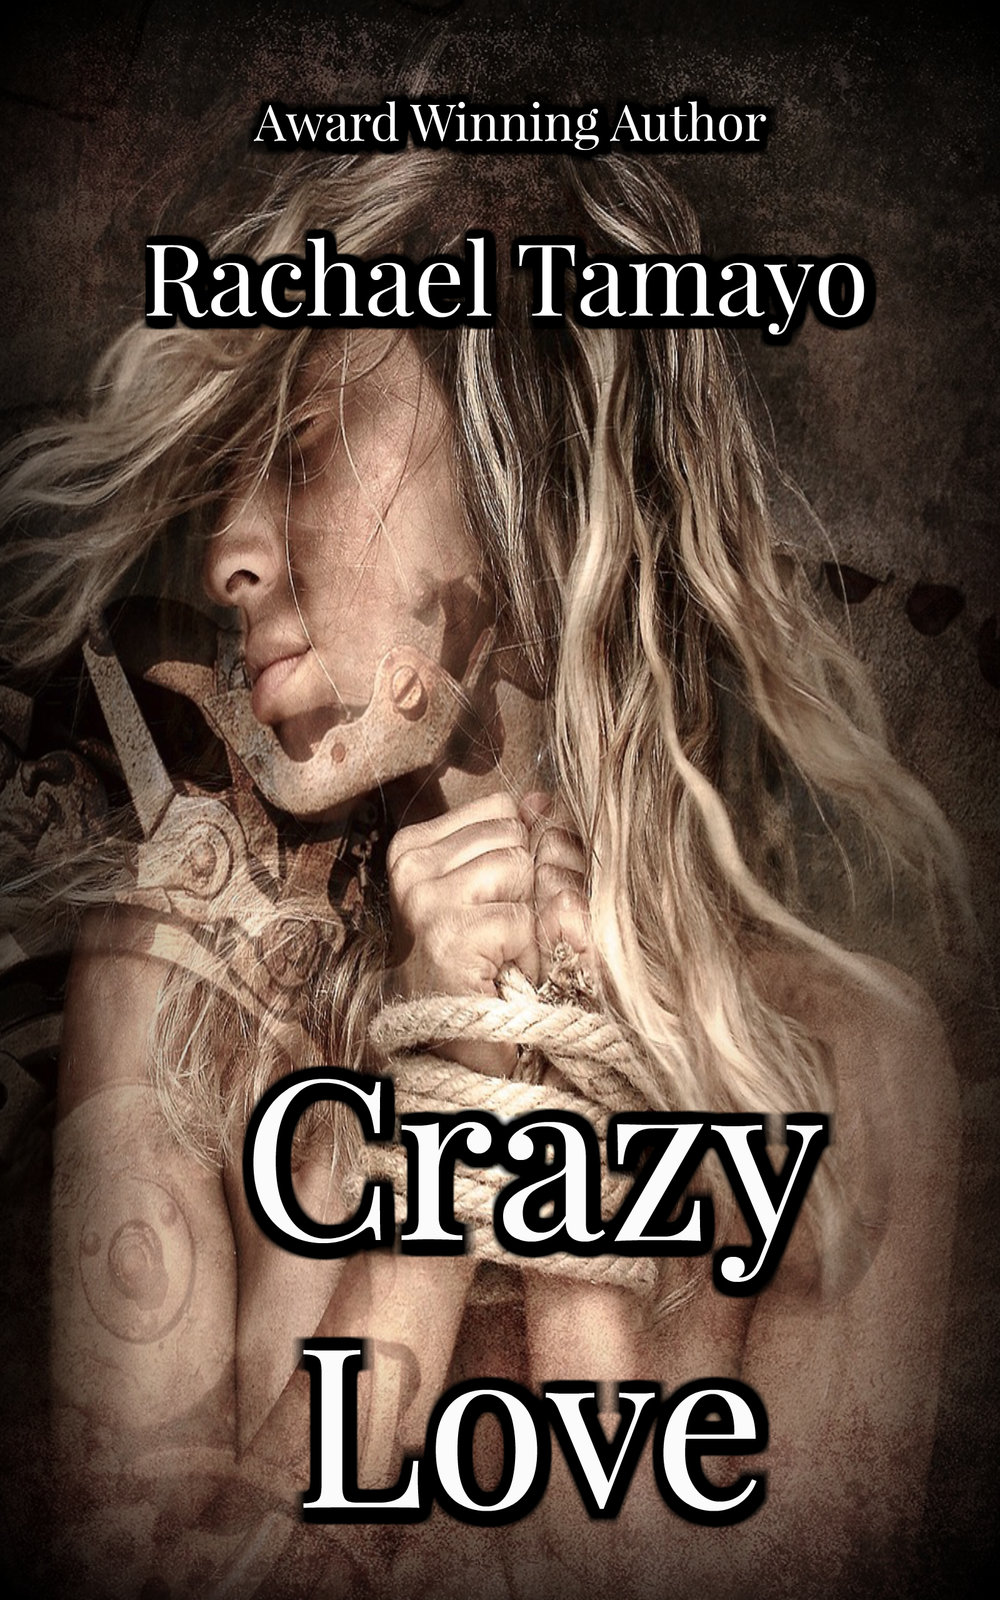 MULTI AWARD WINNING THRILLER-Crazy Love - I love Emily. I know she loves me too, she just needs me to show her. One day, we will be together forever, I'll make sure of that. She's only with this guy she's been hanging around with to test me, see if I'll stand true. Emily wants me to fight for her, to see if I can win her. Of course, I will. Once she sees how I've been caring for her, all the plans I've made, the lengths I've gone to in order to be with her, she will be so proud of me. If only she would stop pretending so I could stop hiding in her attic.Reach deep into the mind of mentally ill millionaire, Noah Burell, as he turns Emily's world upside down. His Deranged love just might be her undoing.